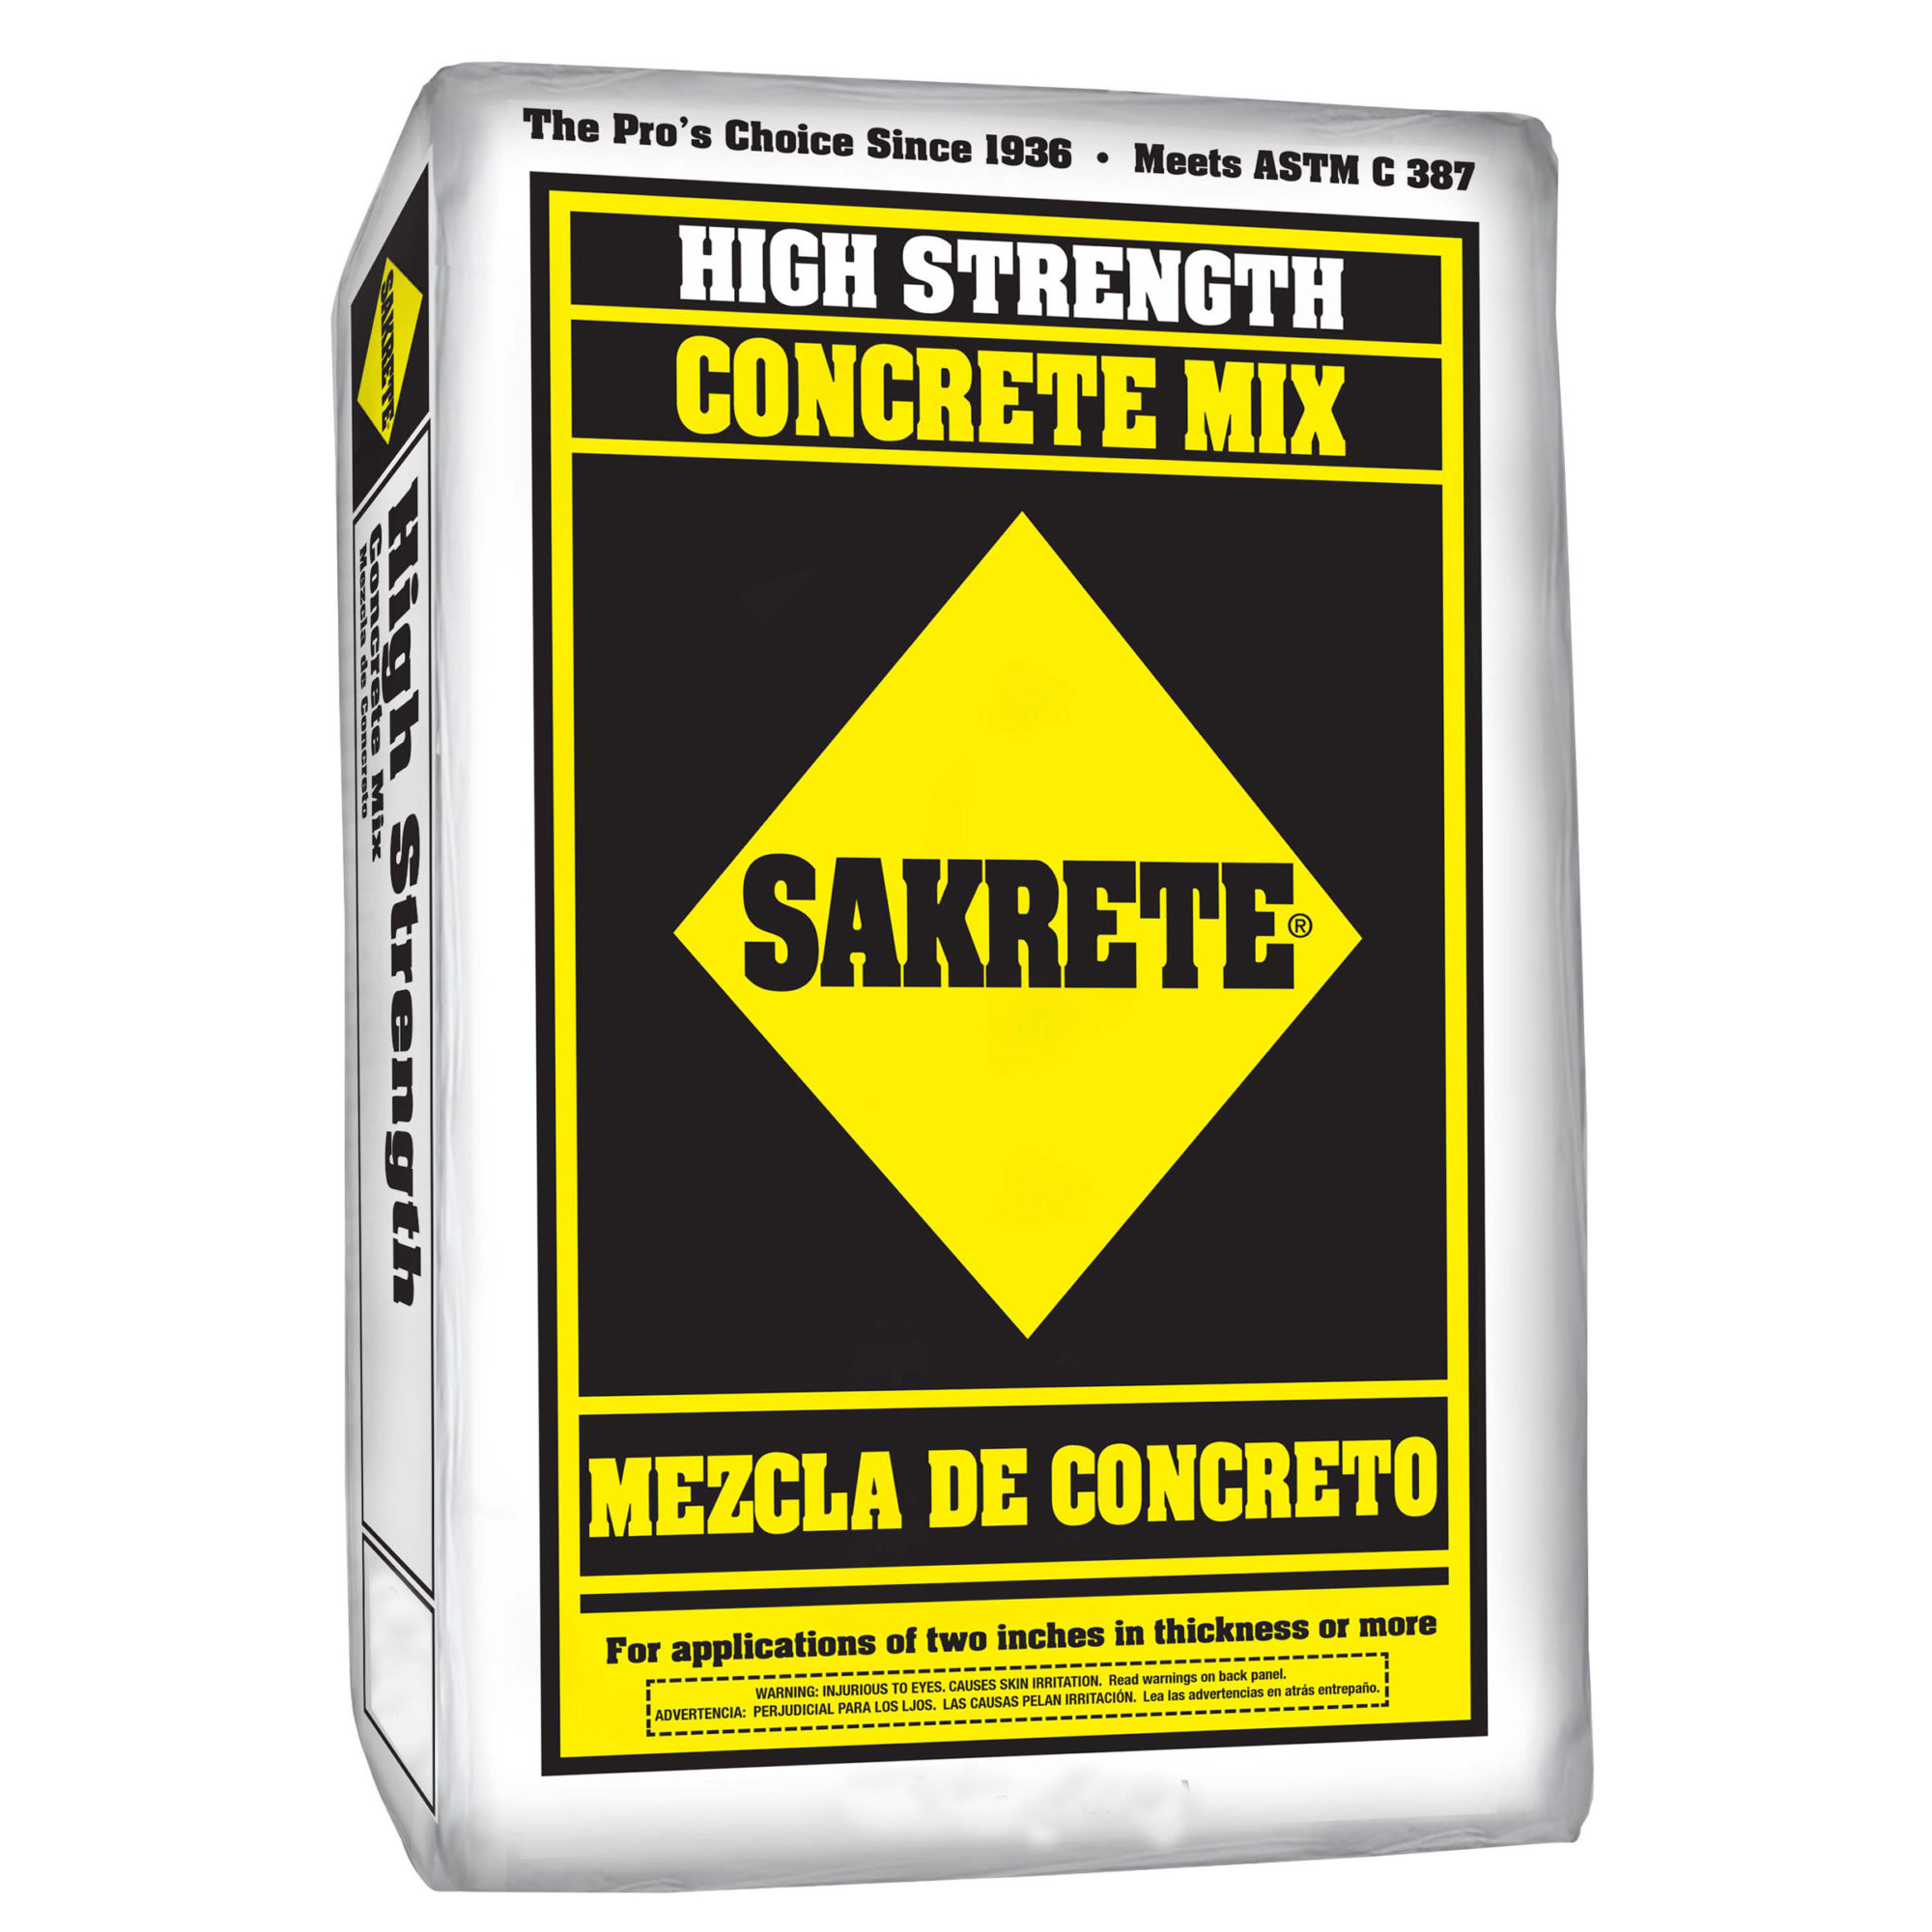 HIGH STRENGTH CONCRETE MIX